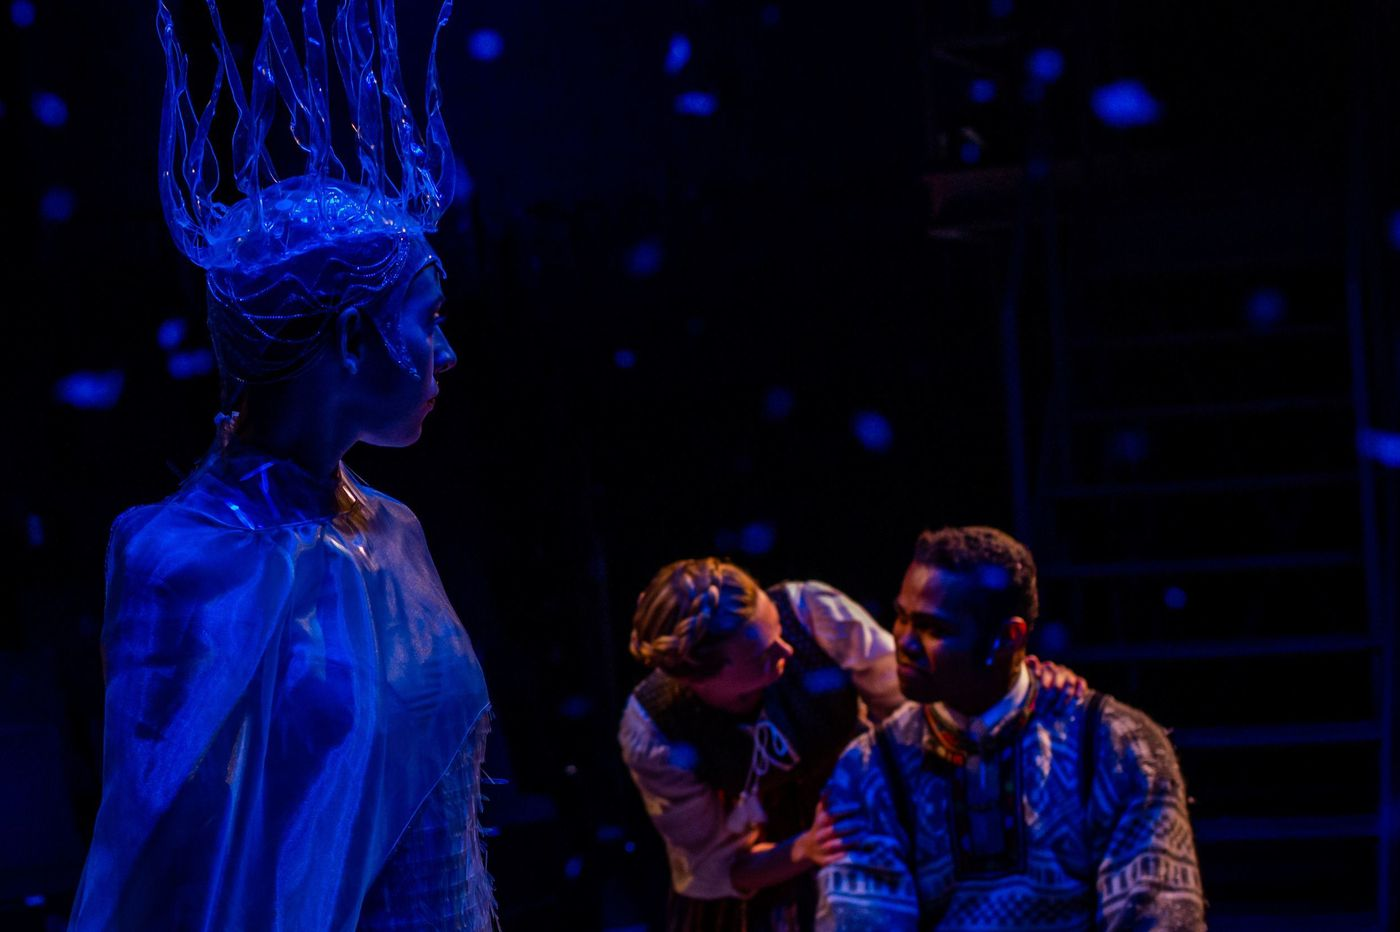 'Snow Queen' at Arden has it all: Imagination, goosebumps, haunting sound — and lots of snow